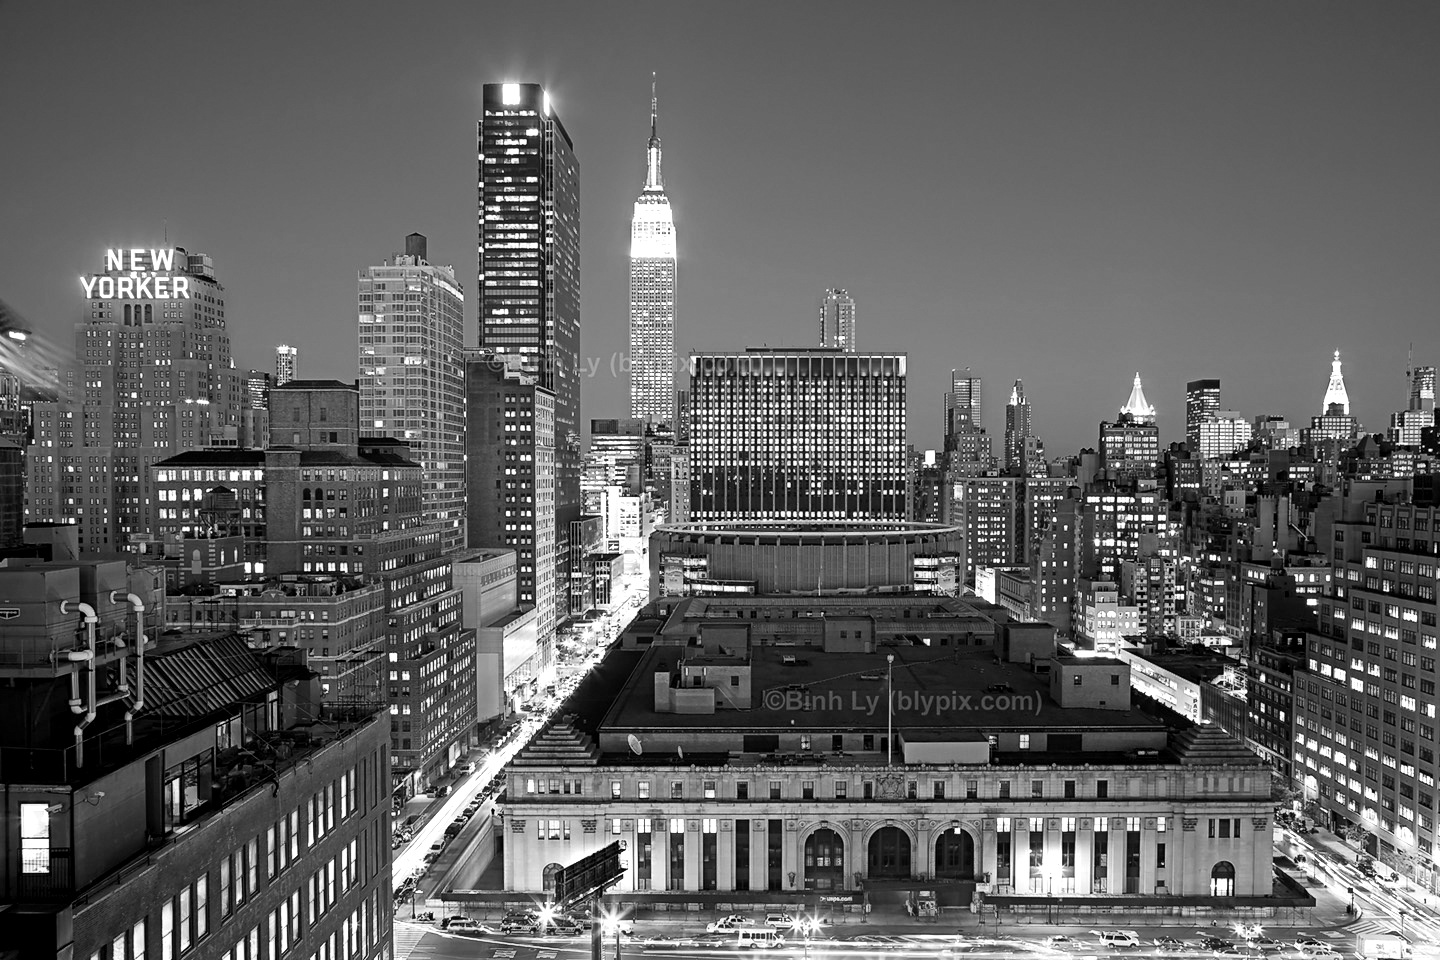 48 Nyc Black And White Wallpaper On Wallpapersafari